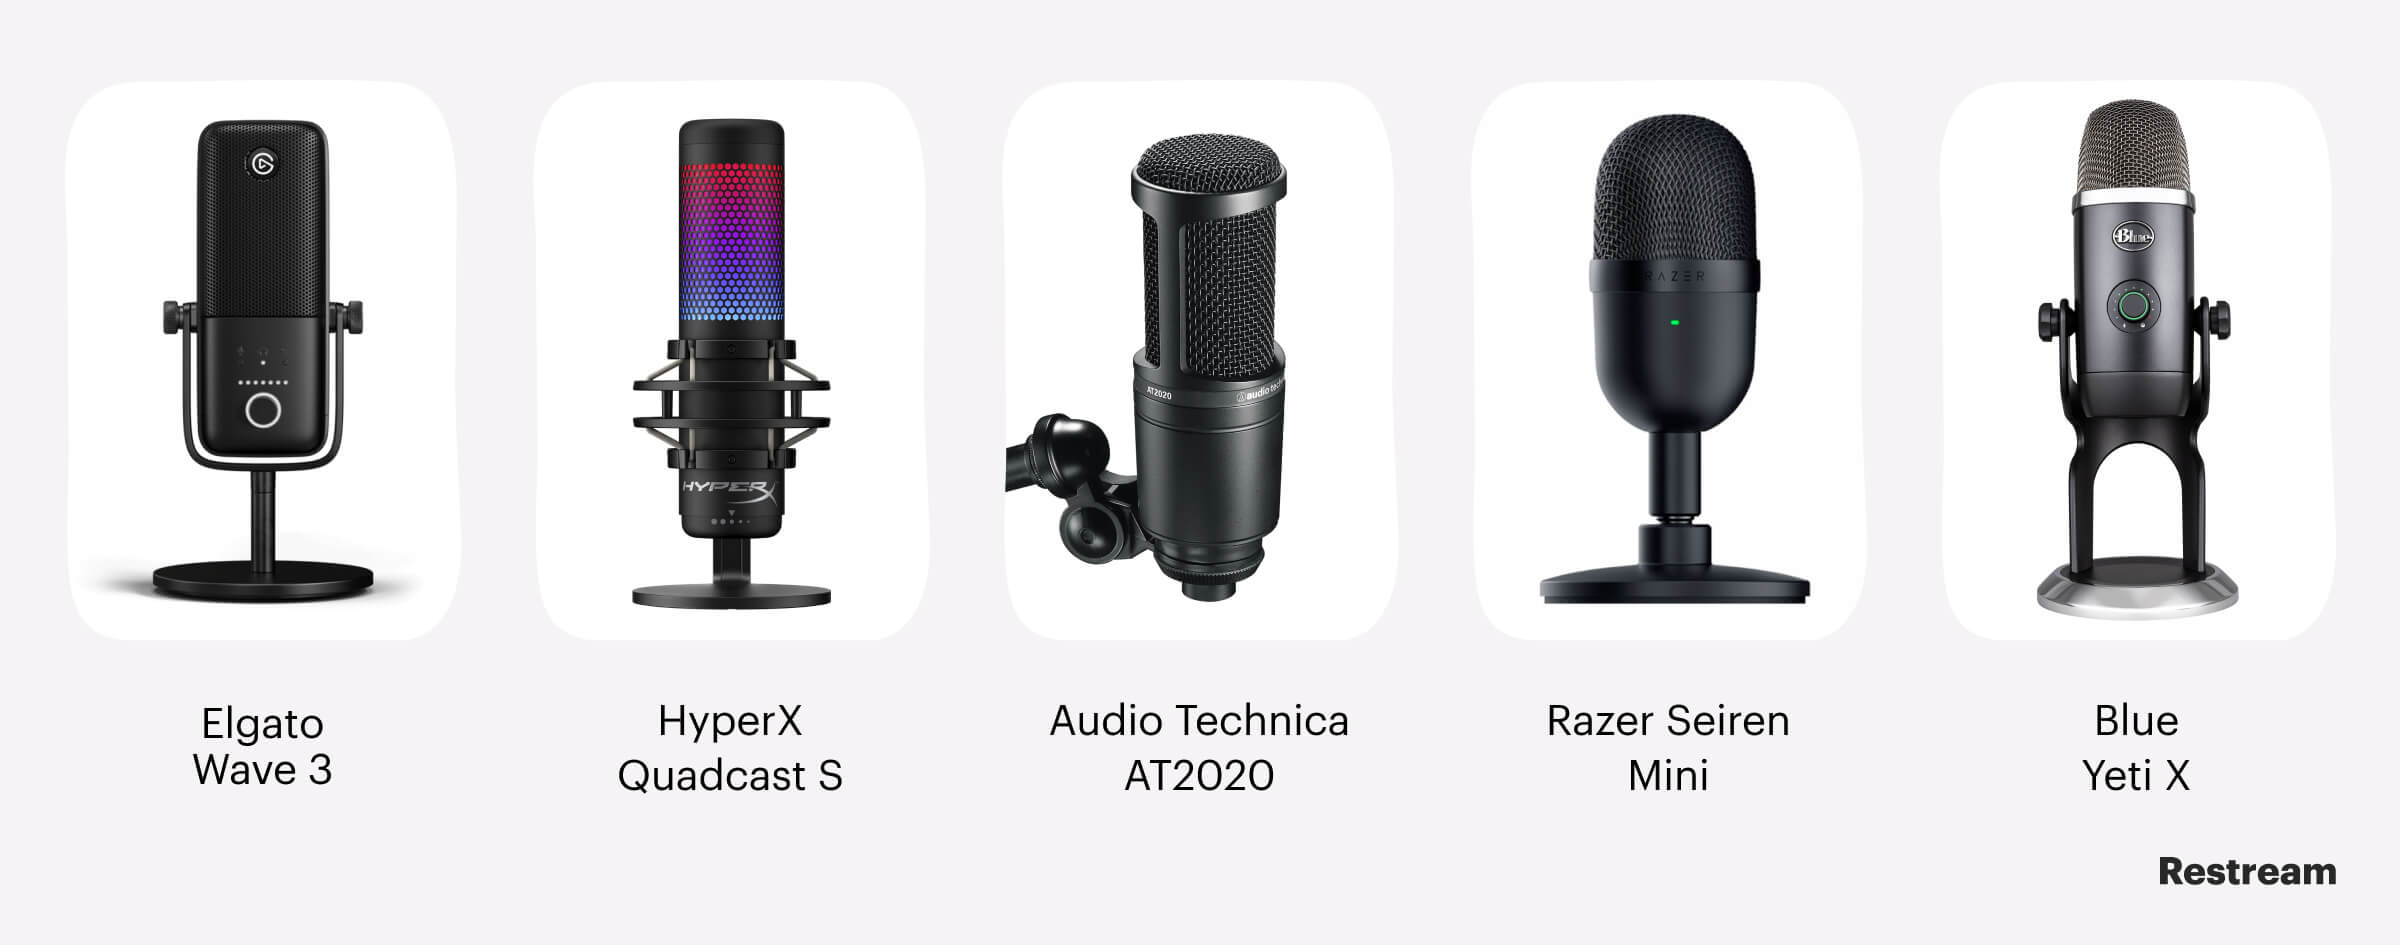 Best microphones for streaming on Twitch